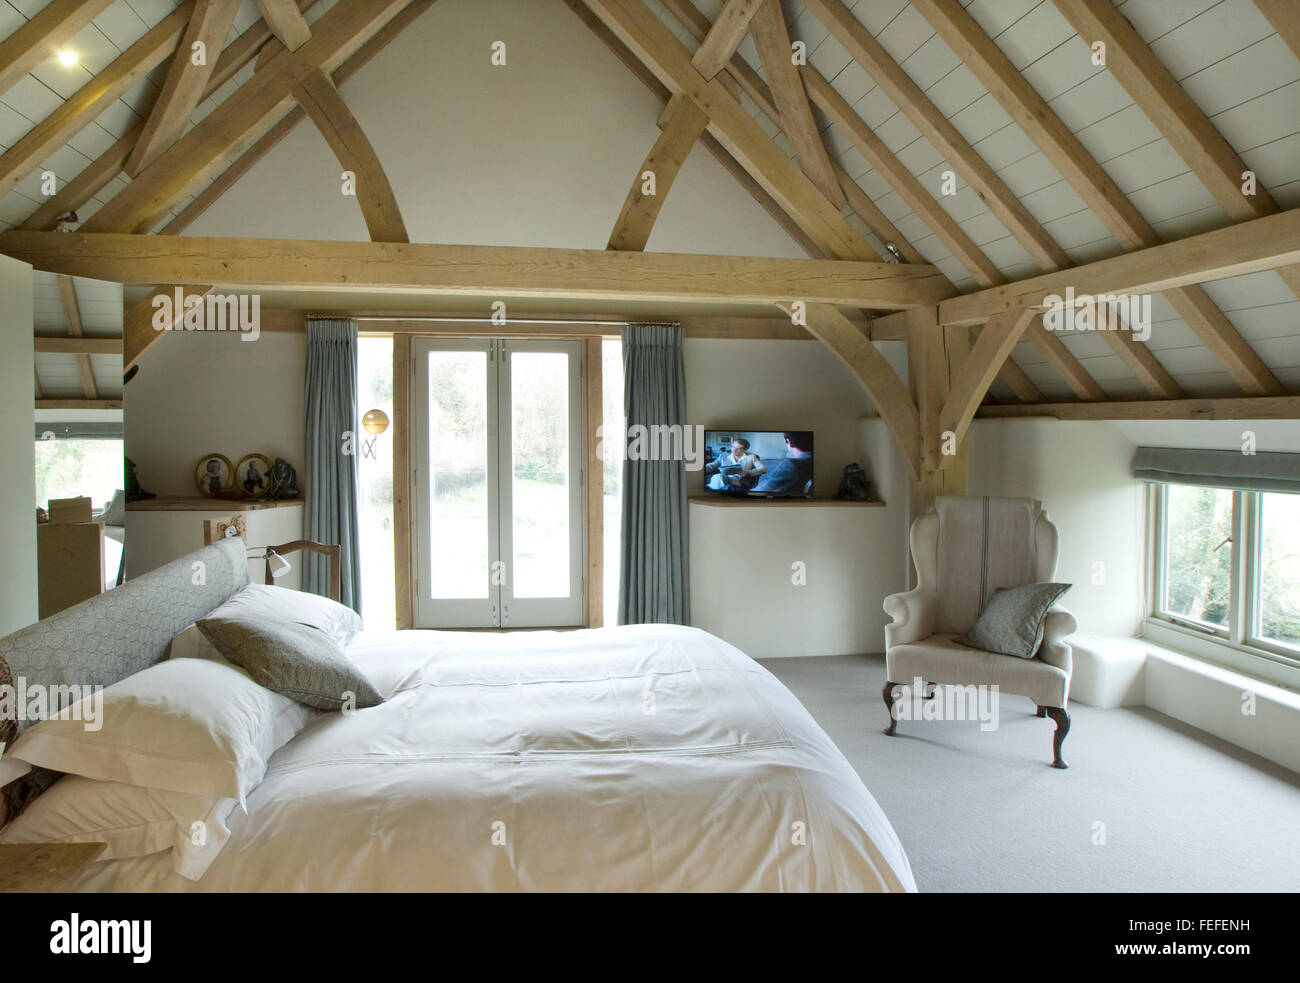 Master bedroom in barn conversion. Oak ceiling, french windows. New build - Stock Image